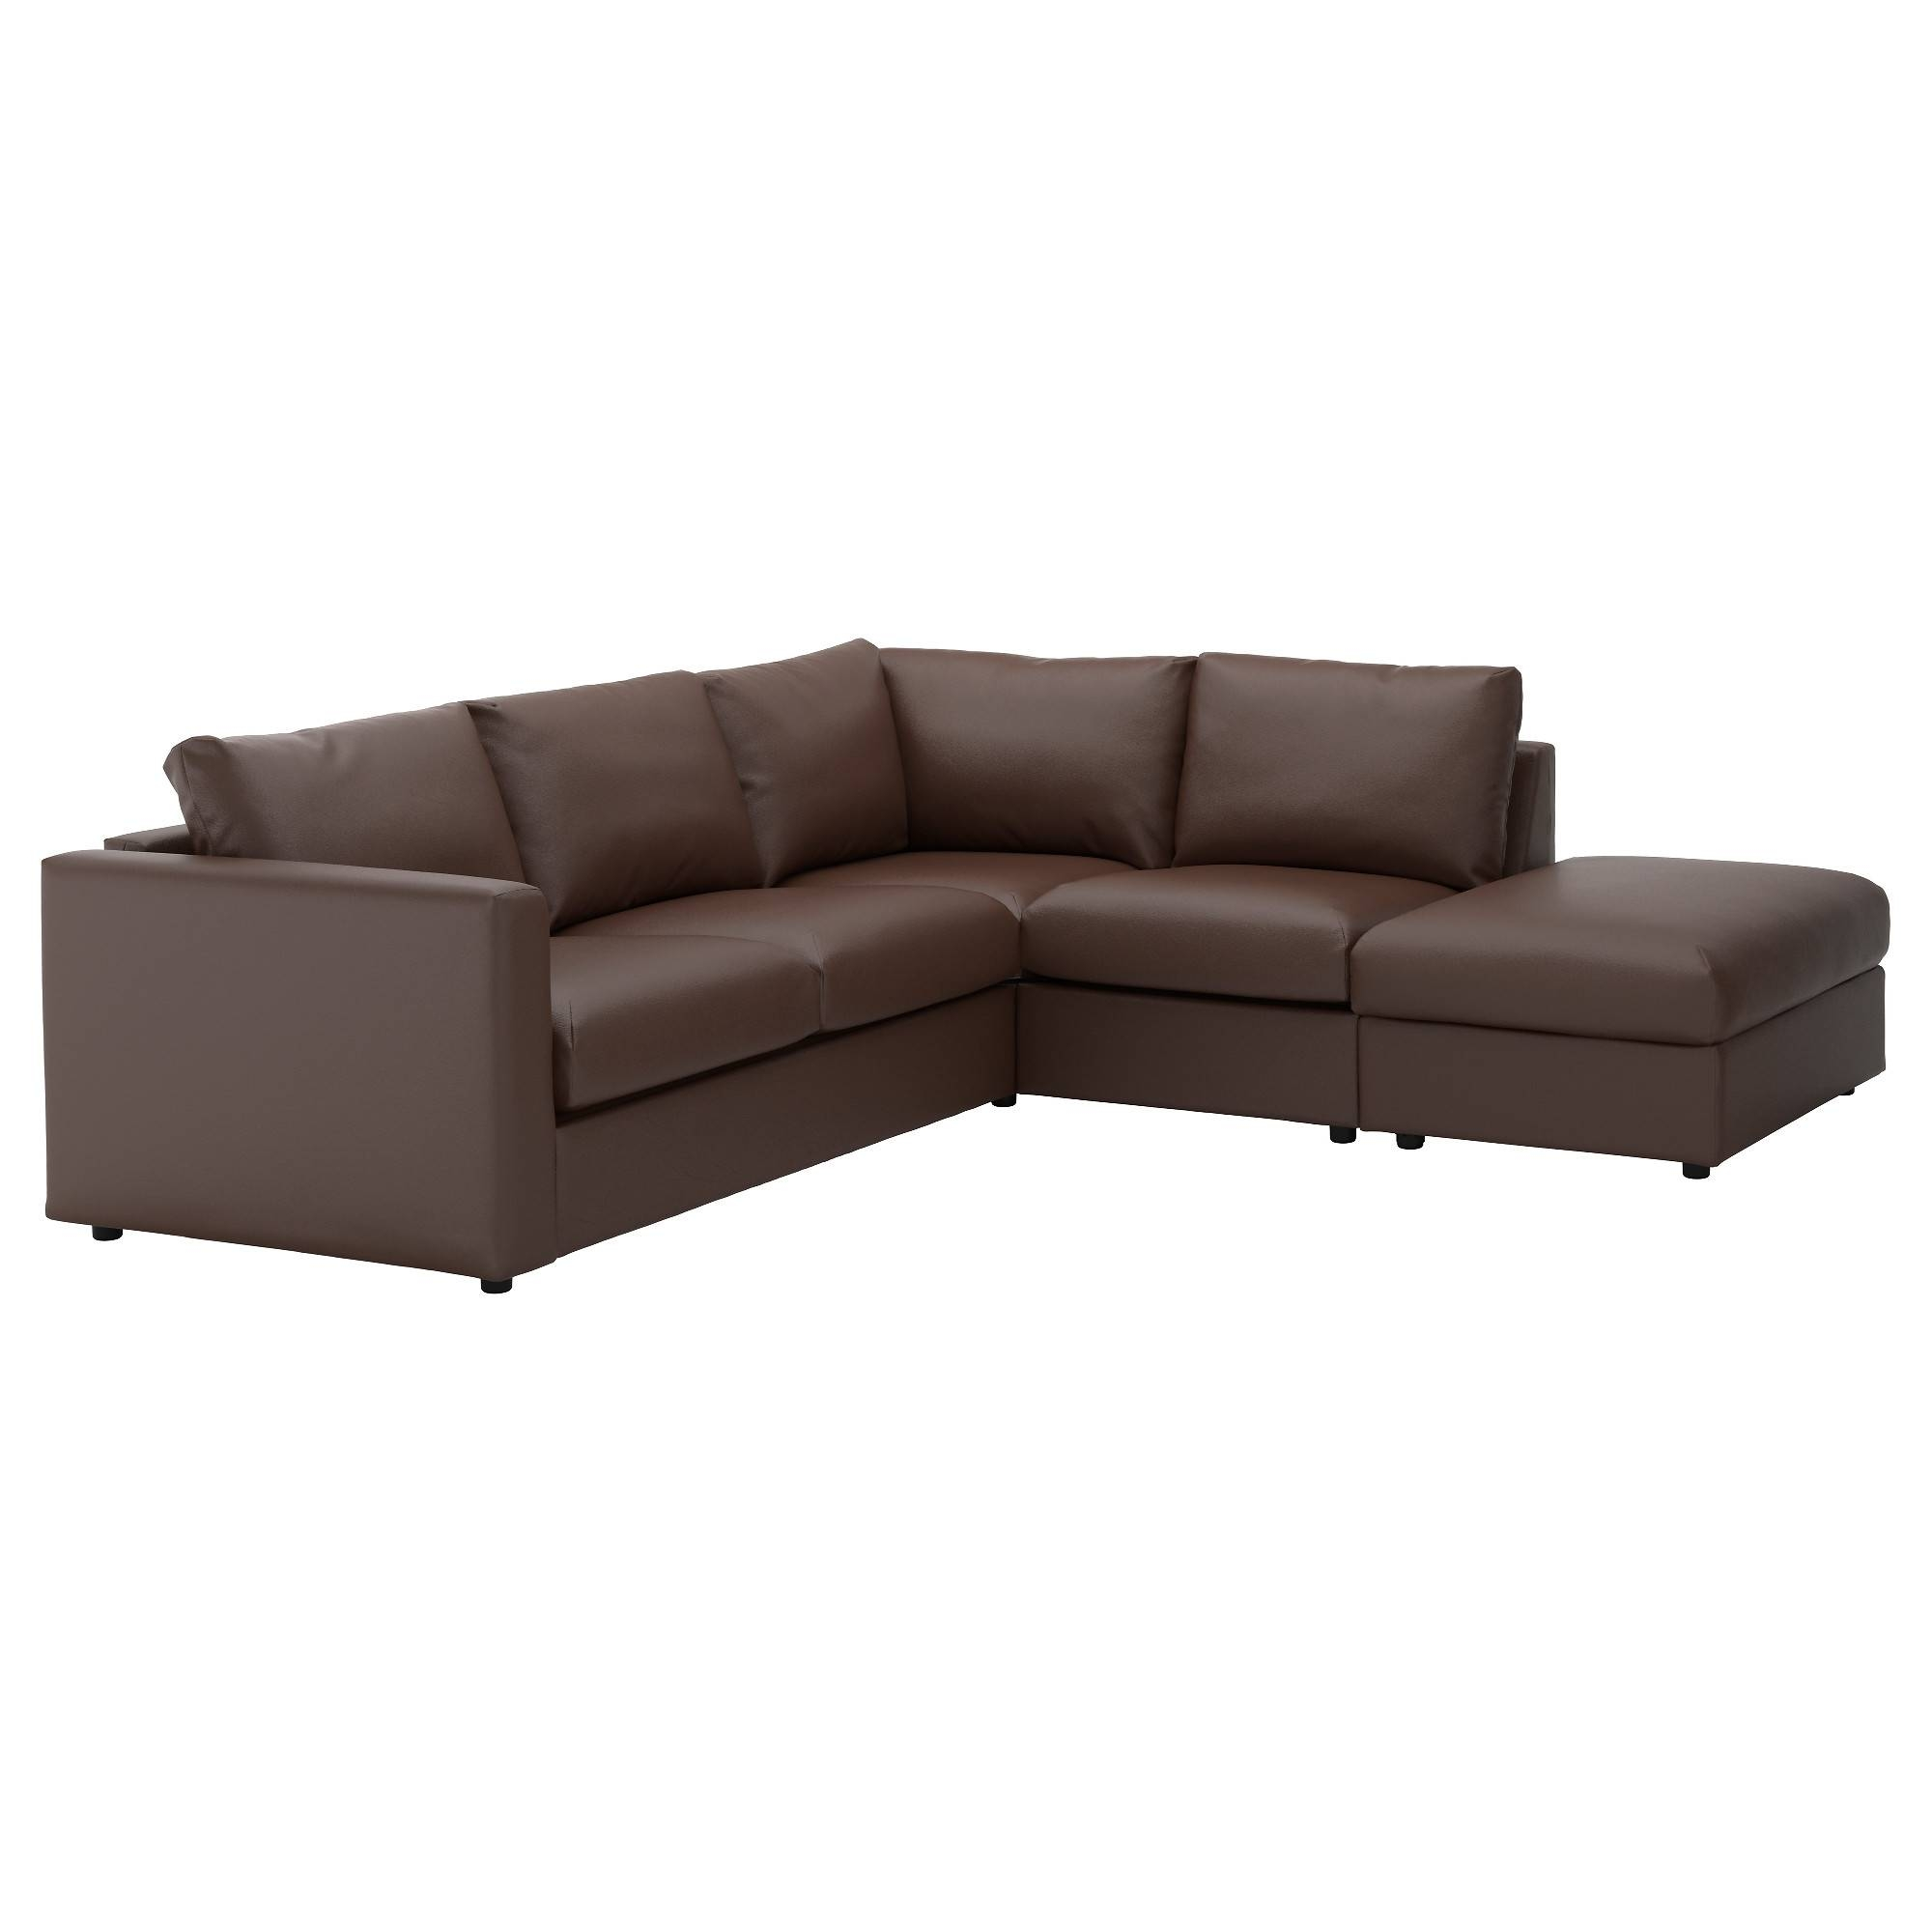 Best Leather Sofas Ontario Small Loveseat Big Lots Outdoor